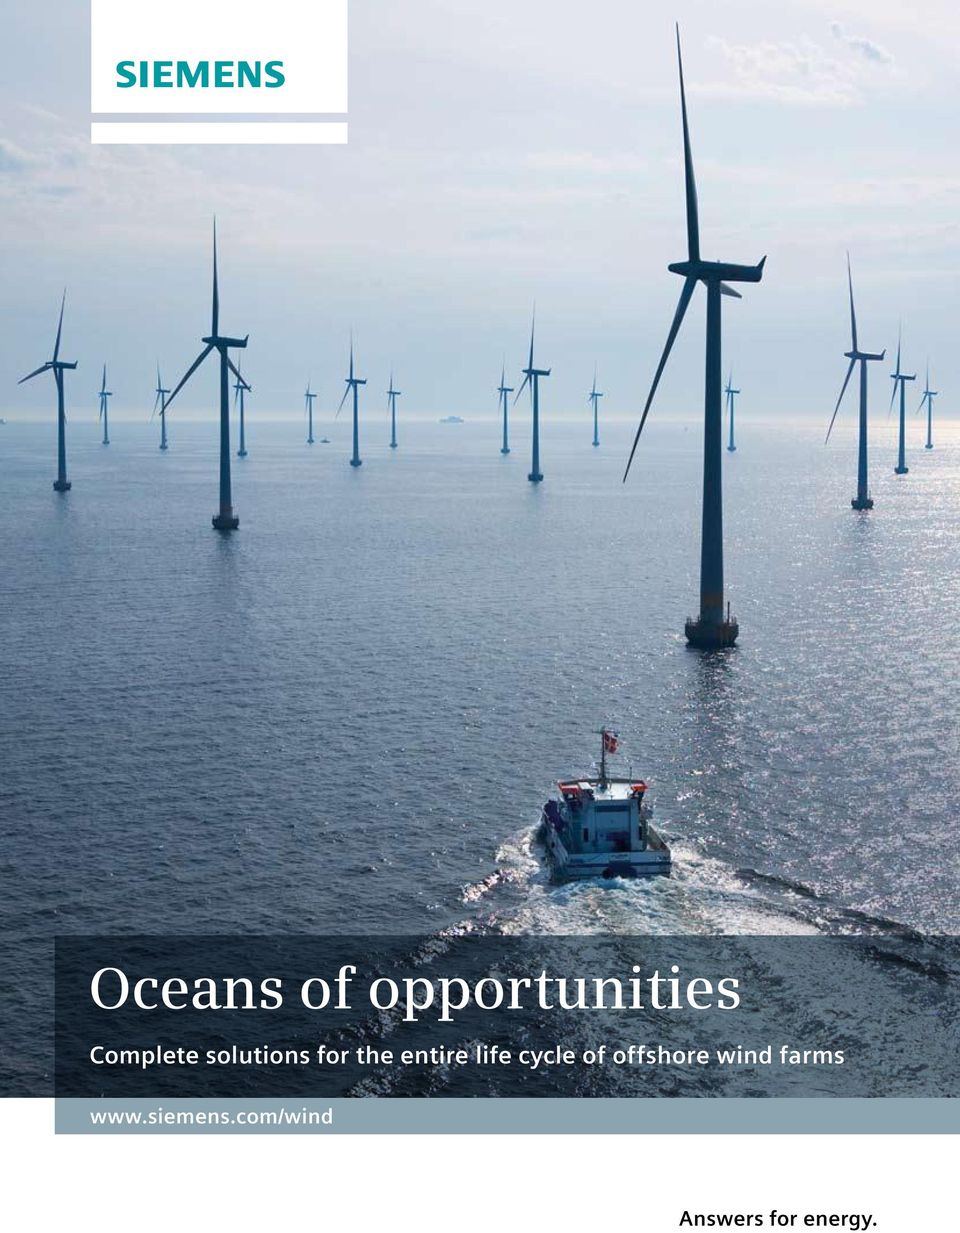 cycle of offshore wind farms www.